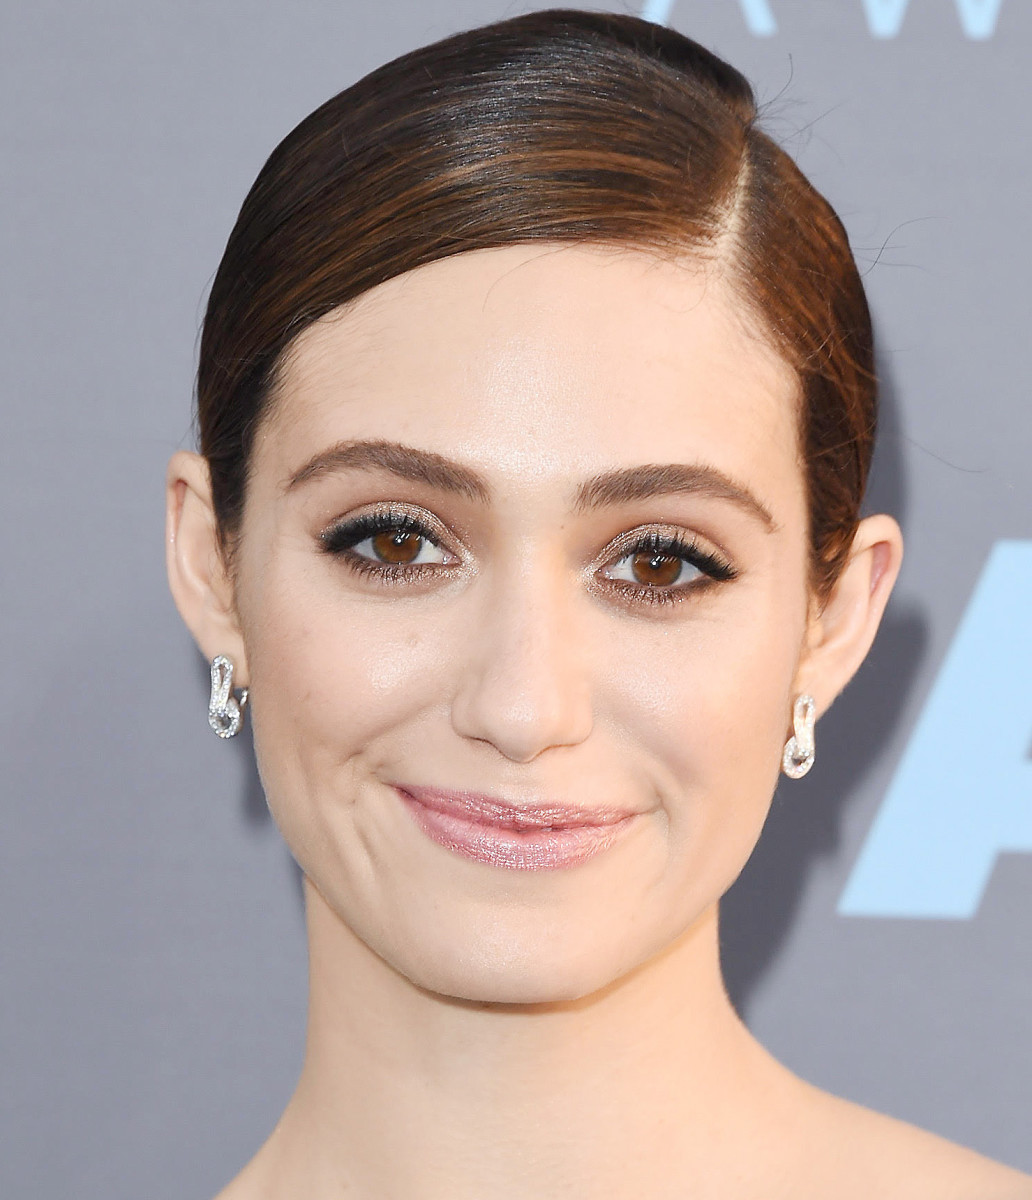 Emmy Rossum: 2016 Critics Choice Awards makeup – warm dramatic eyes and dewy skin